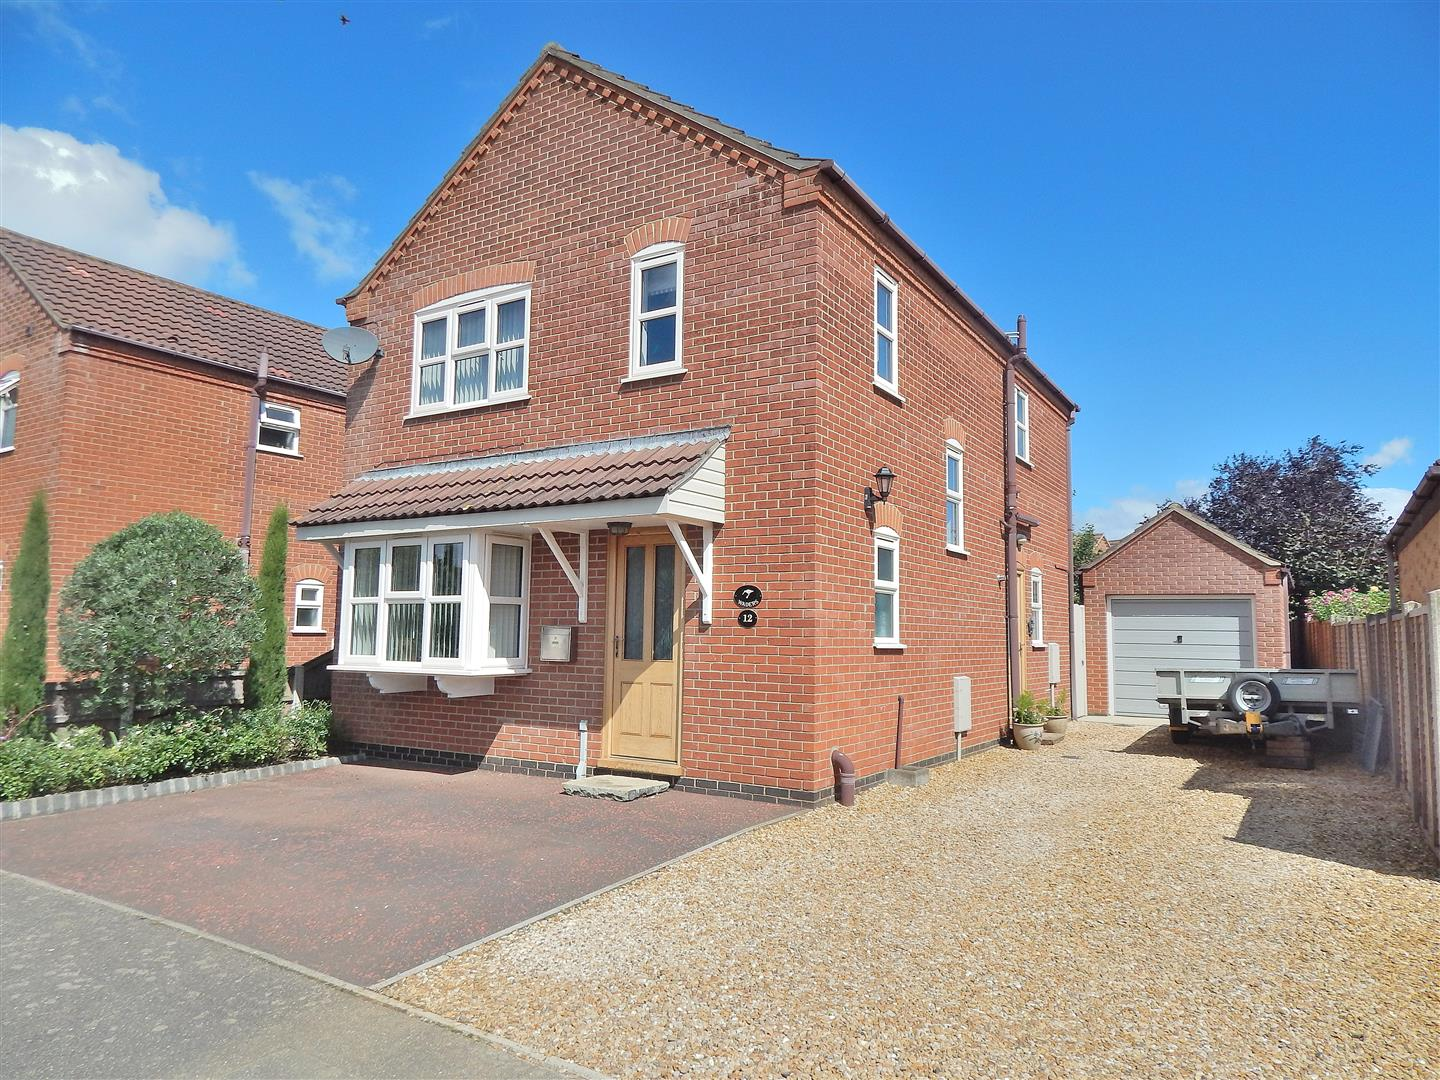 4 bed detached house for sale in King's Lynn, PE31 6UX  - Property Image 1